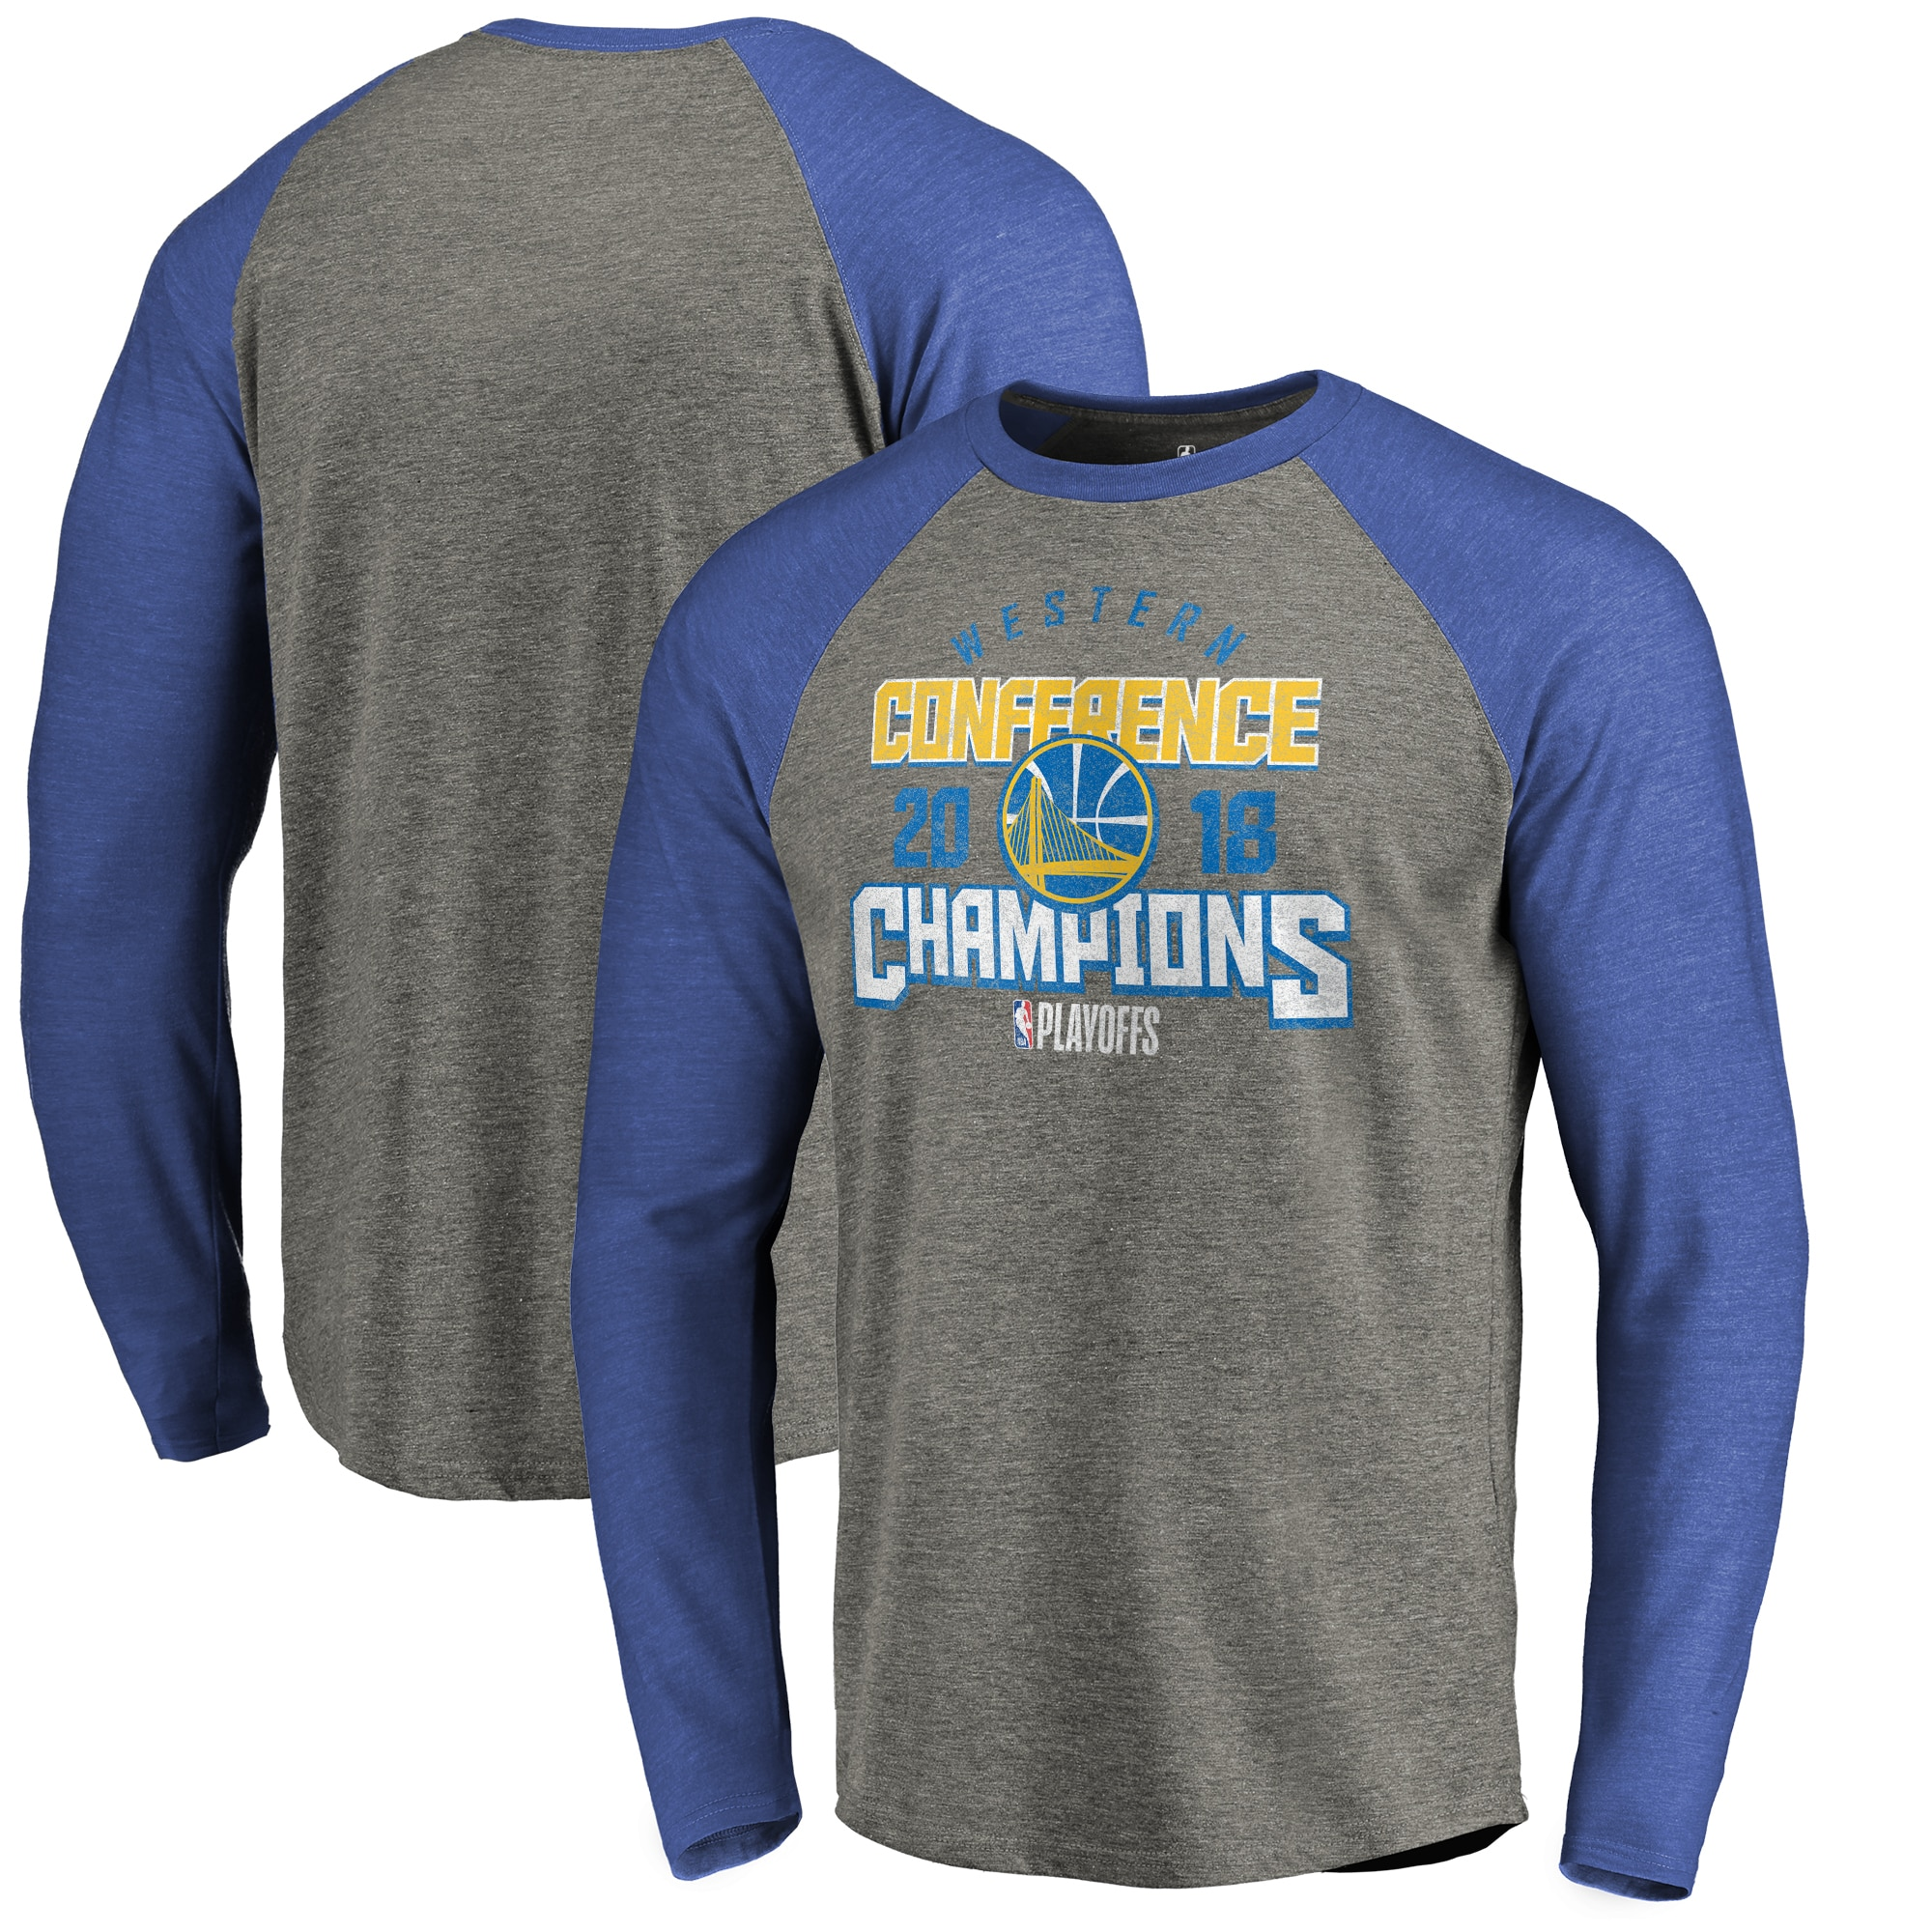 Golden State Warriors Fanatics Branded 2018 Western Conference Champions Catch and Shoot Tri-Blend Long Sleeve Raglan T-Shirt - Heather Gray